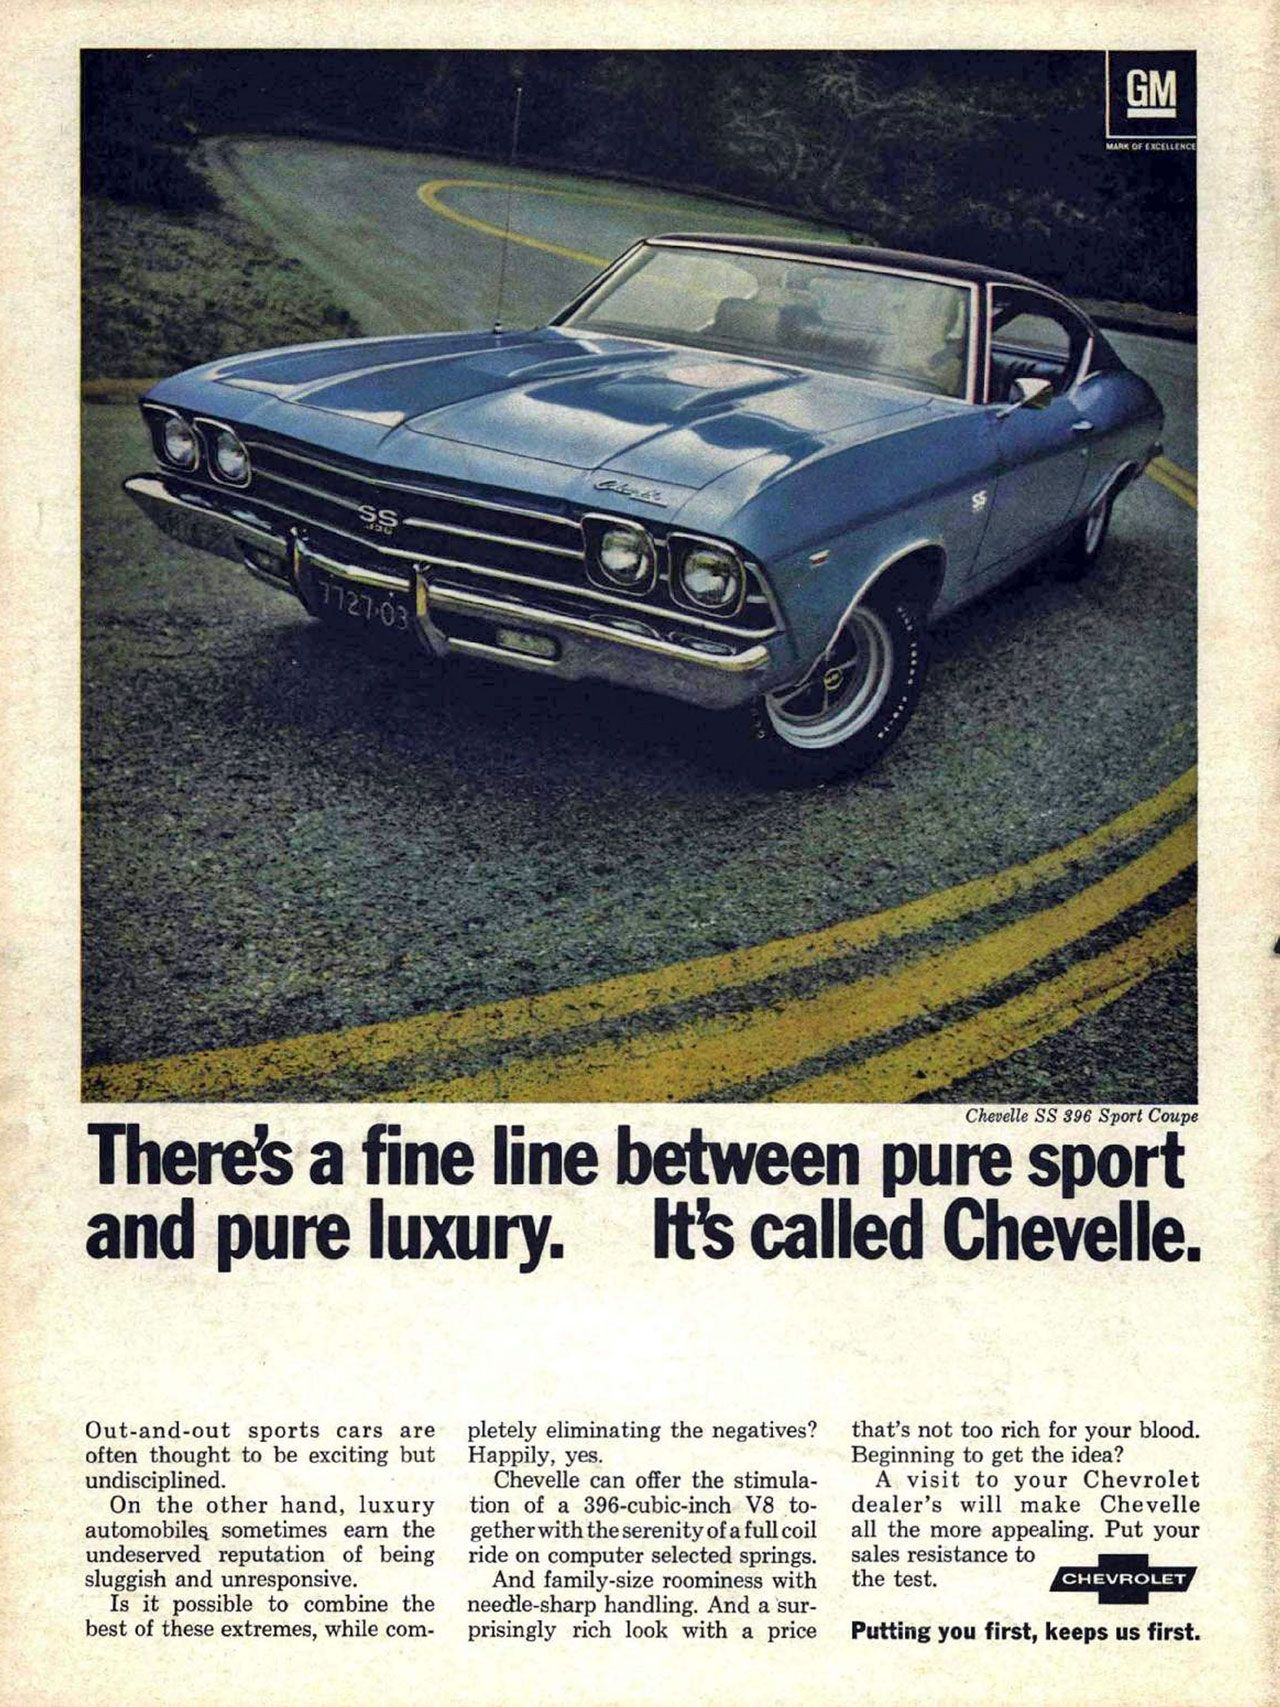 There's a fine line between pure sport and pure luxury. It's called Chevelle. Out-and-out sports cars are often thought to be exciting but undisciplined. On the other hand, luxury automobiles sometimes earn the undeserved reputation of being sluggish and unresponsive. Is it possible to combine the best of these extremes, while completely eliminating the negatives? Happily, yes. Chevelle can offer the stimula-tion of a 396-cubic-inch V8 to-gether with the serenity of a full coil ride on computer selected springs. And family-size roominess with needle-sharp handling. And a sur-prisingly rich look with a price that's not too rich for your blood. Beginning to get the idea? A visit to your Chevrolet dealer's will make Chevelle all the more appealing. Put your sales resistance to the test. Chevrolet. Putting you first, keeps us first.